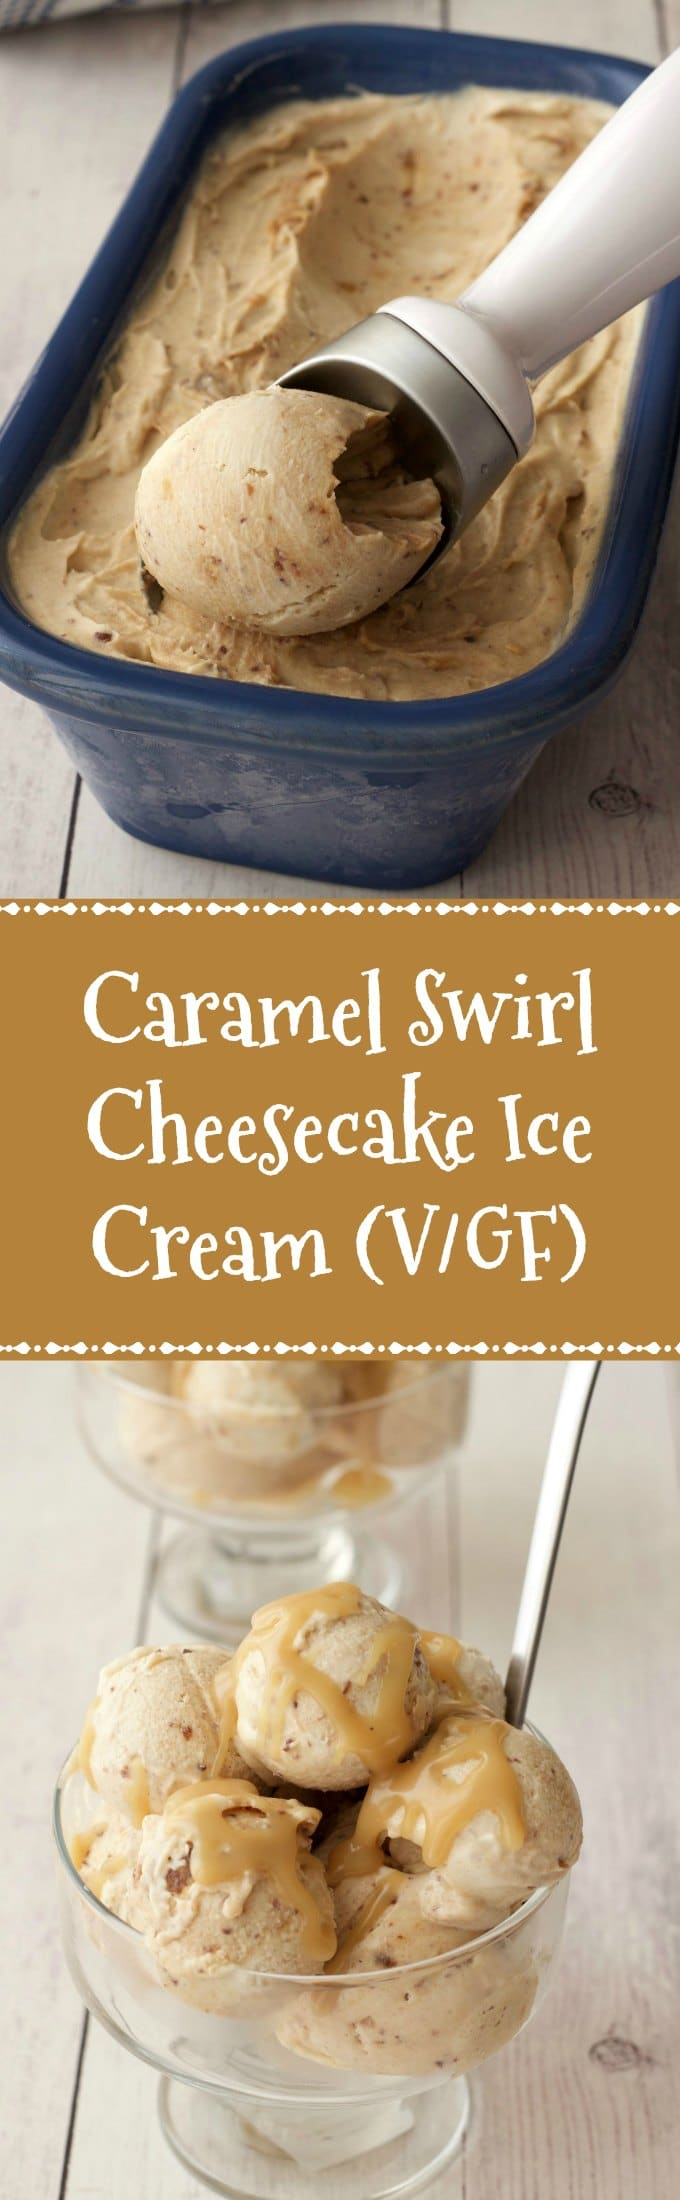 Caramel Swirl Cheesecake Ice Cream topped with Caramel Sauce #vegan #lovingitvegan #cheesecake #icecream #dessert #dairyfree #glutenfree